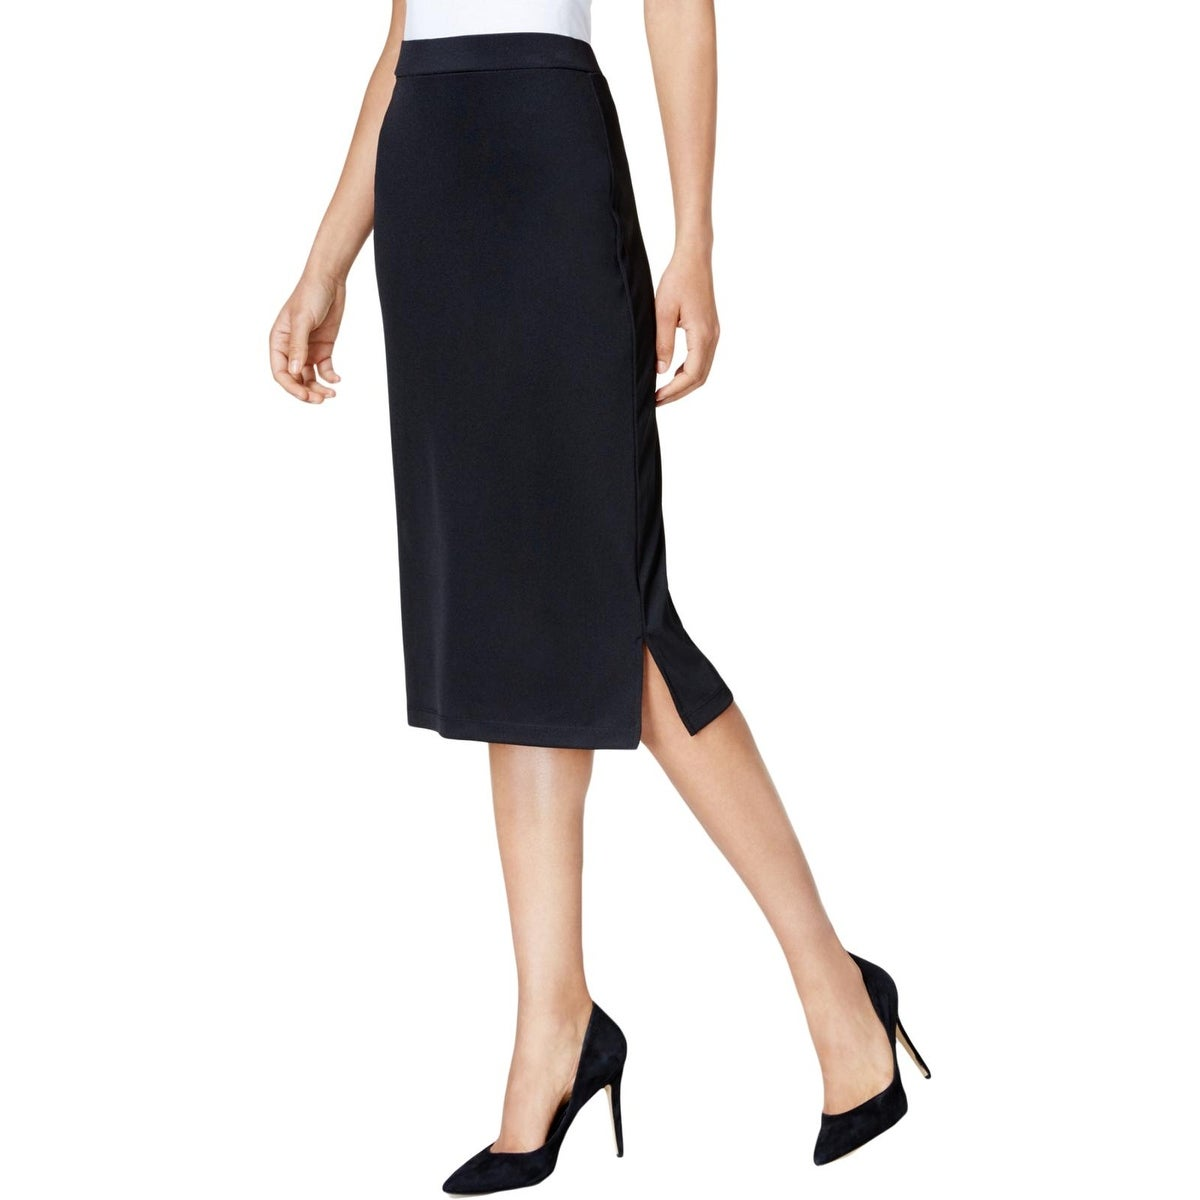 4fdb7a5d1 Kasper Women's Clothing   Shop our Best Clothing & Shoes Deals Online at  Overstock